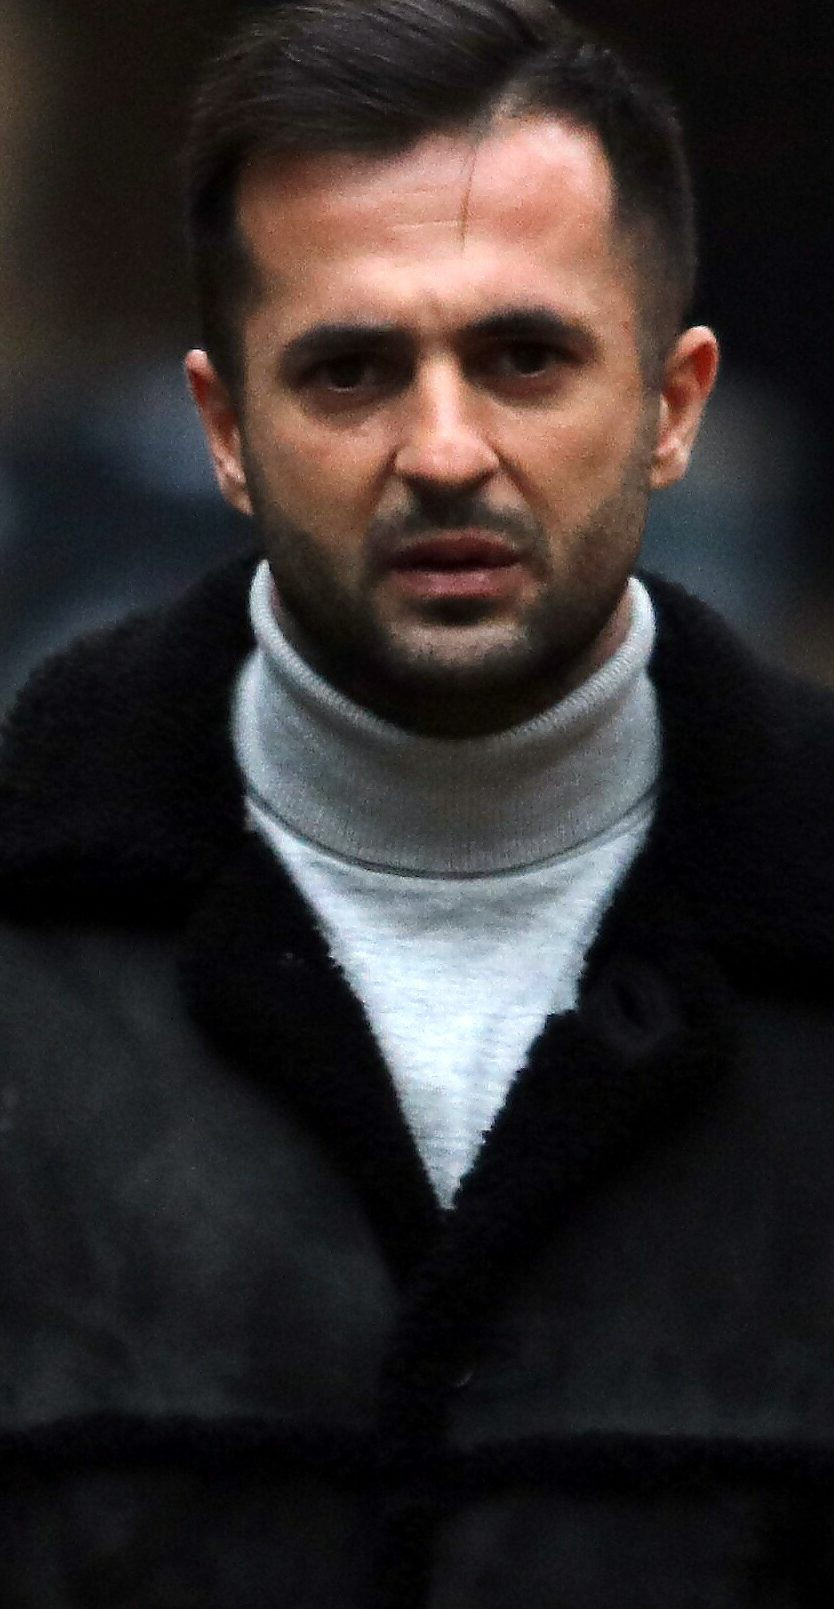 Range Rover driver cleared over 'wigger' row